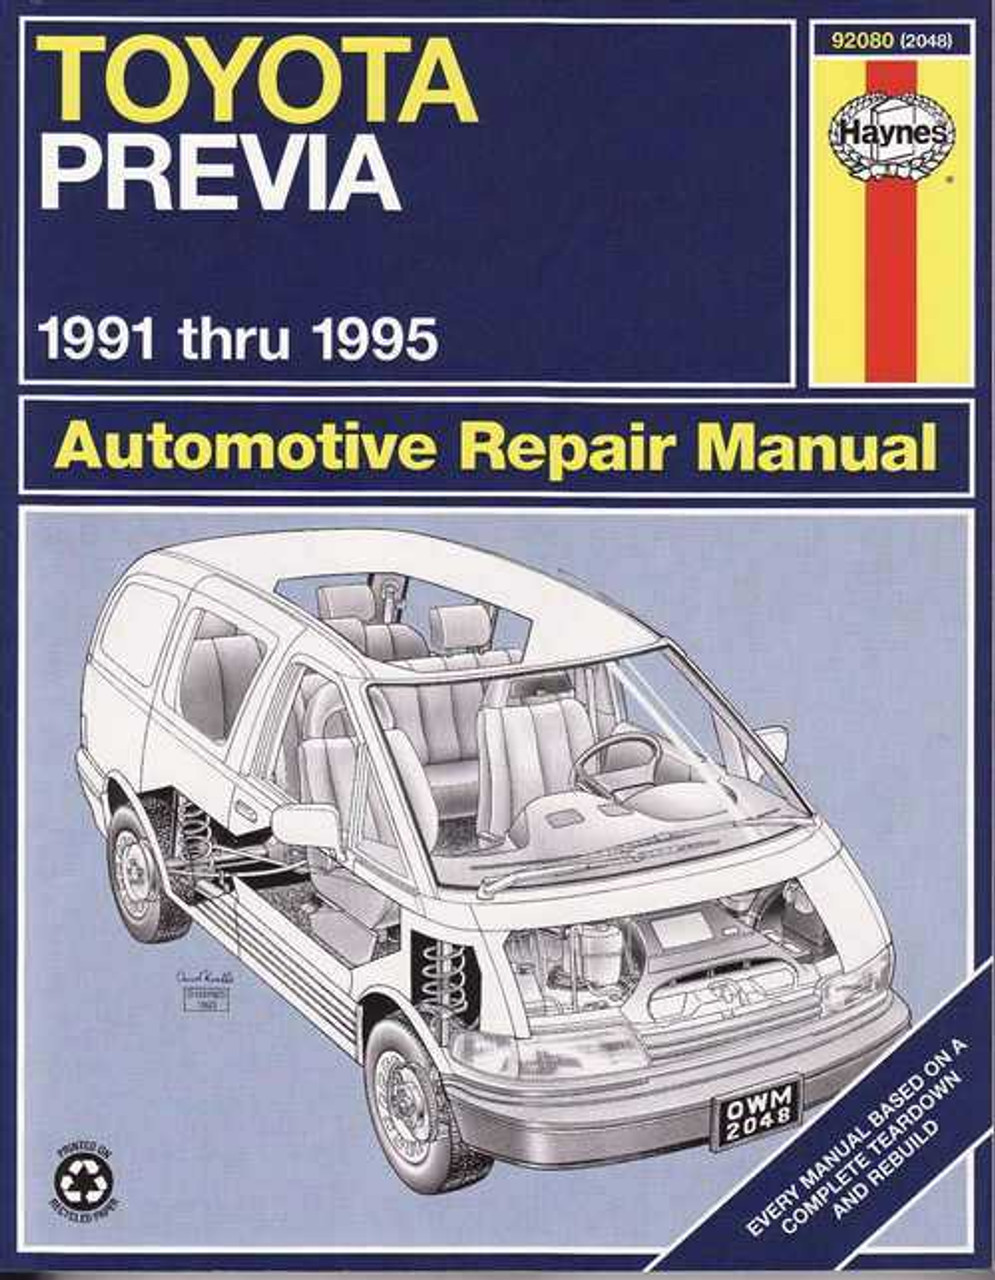 B1228 Toyota Previa Workshop Manual 334971339460243c2imbypasson